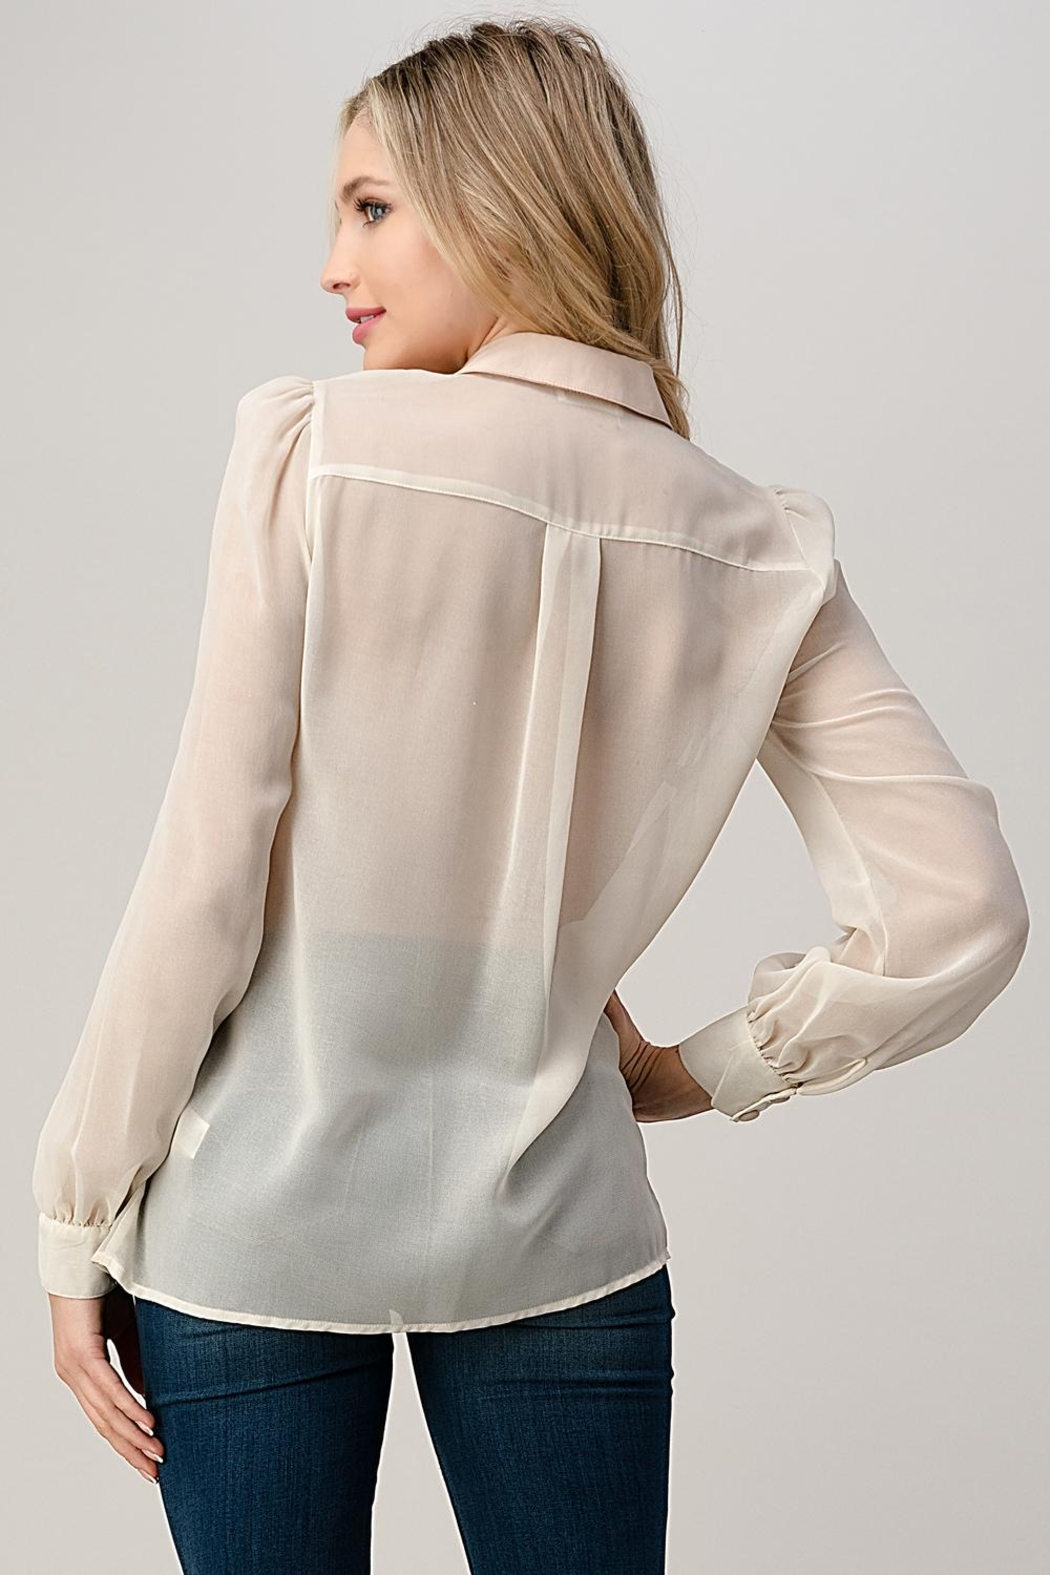 Kaii Mesh Blouse Shirt Top With Beaded Jewel Trim - Side Cropped Image